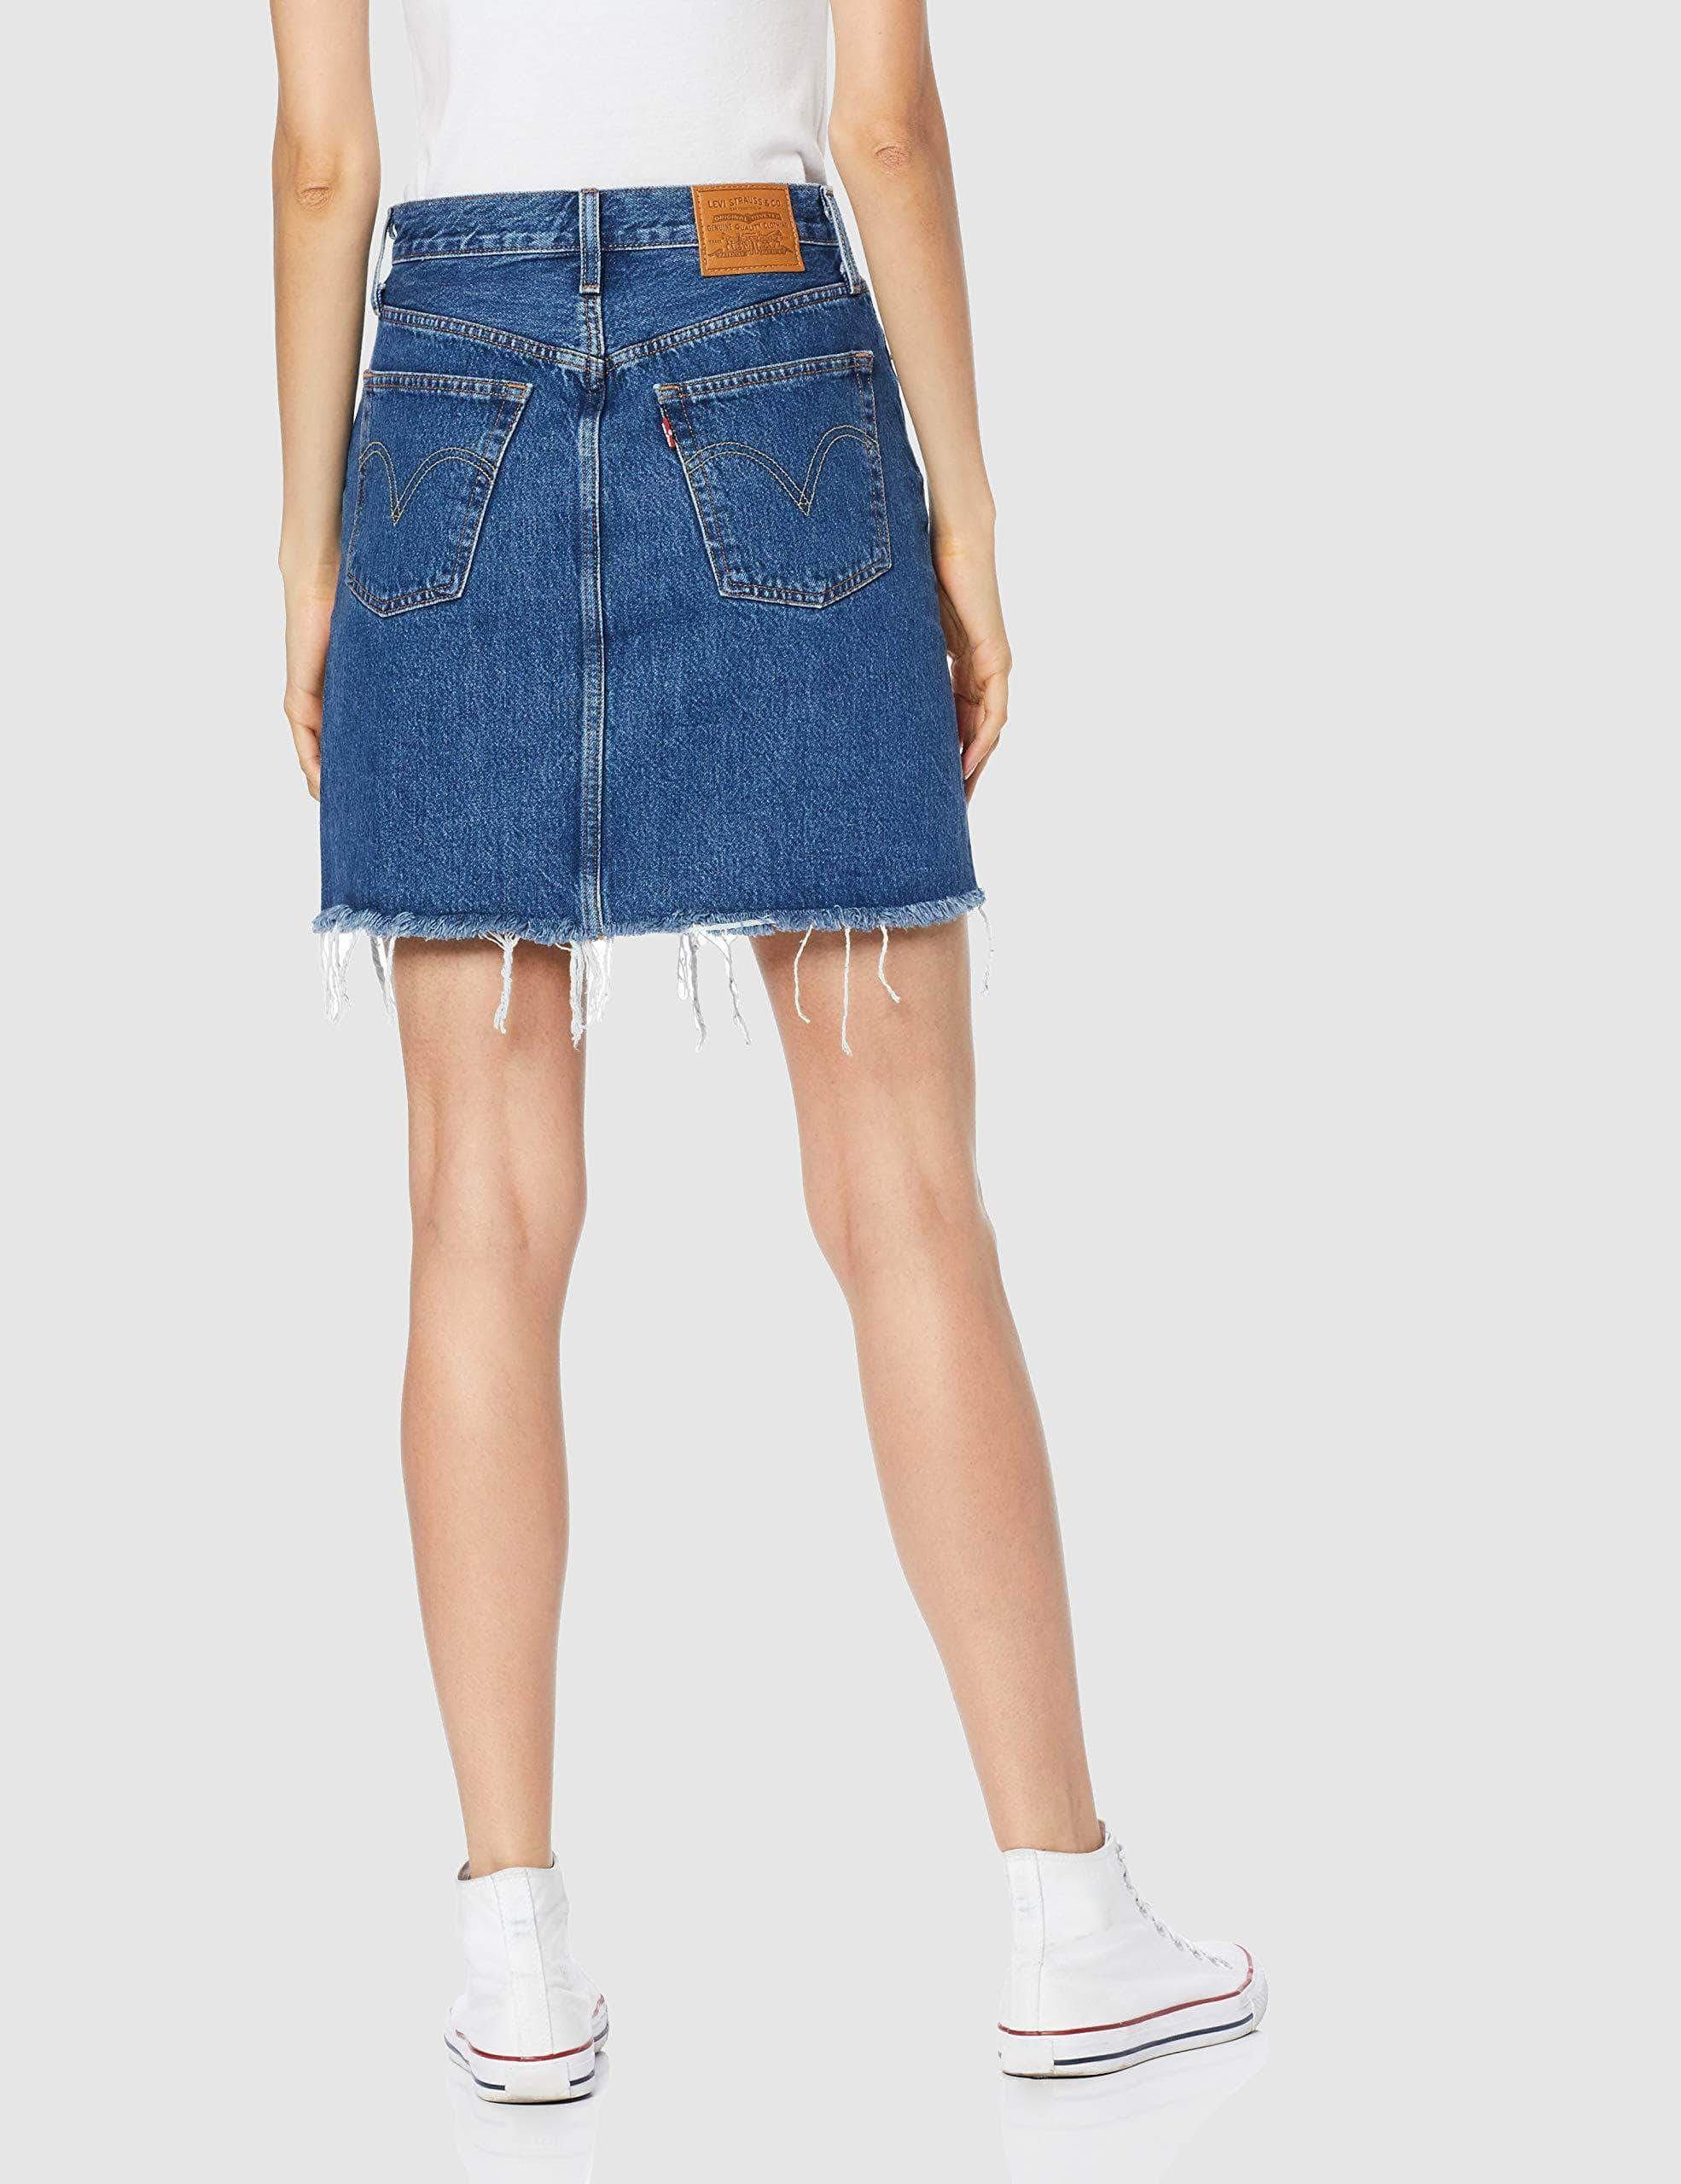 Amazon Levi's HR Decon Iconic BF Skirt Falda, Azul (Meer In The Middle 0009), Talla única (Talla del Fabricante: 27) para Mujer